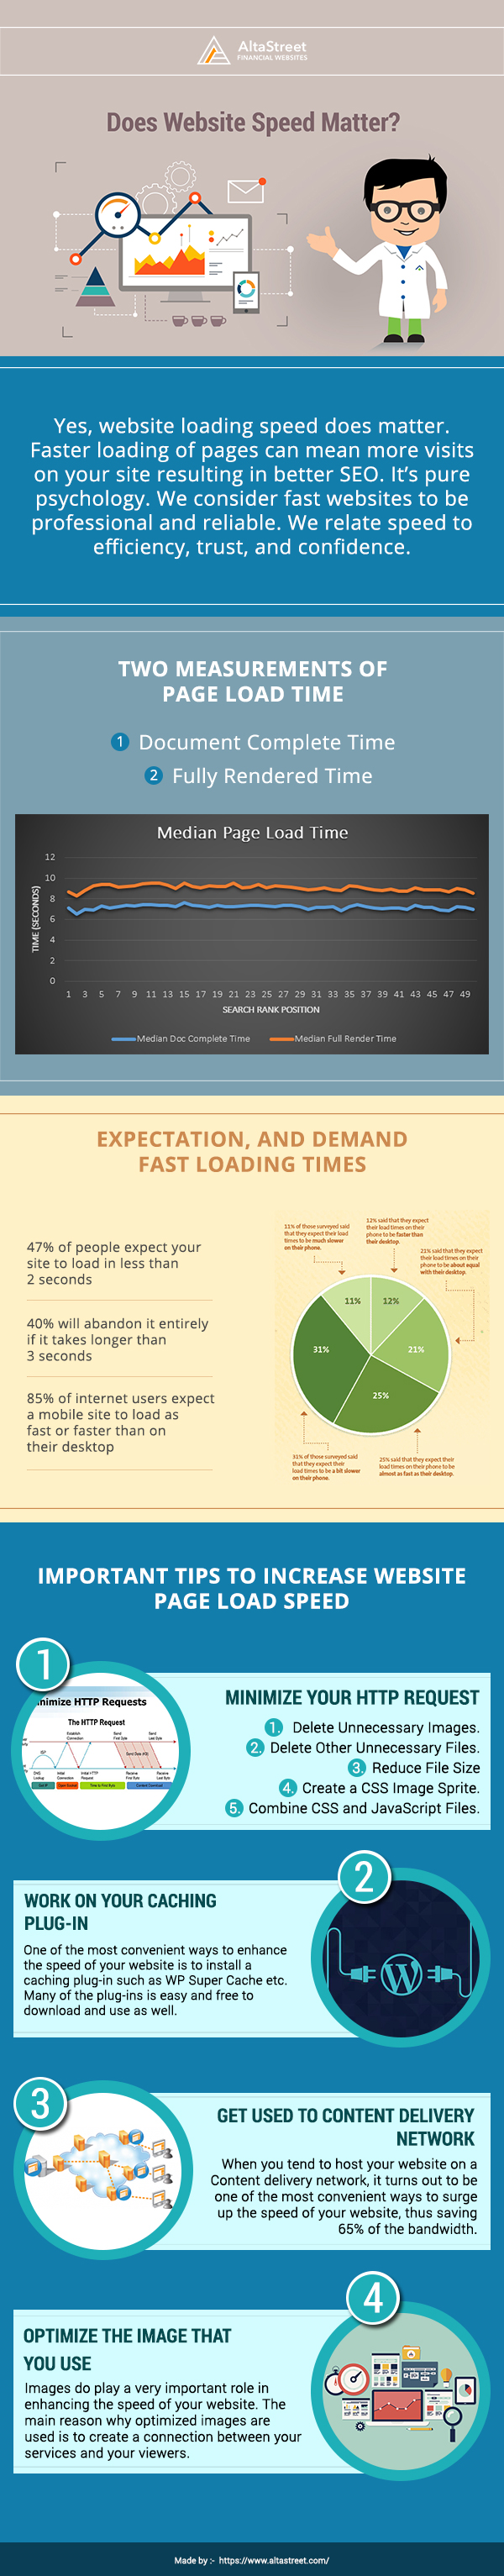 why website speed matter infographic